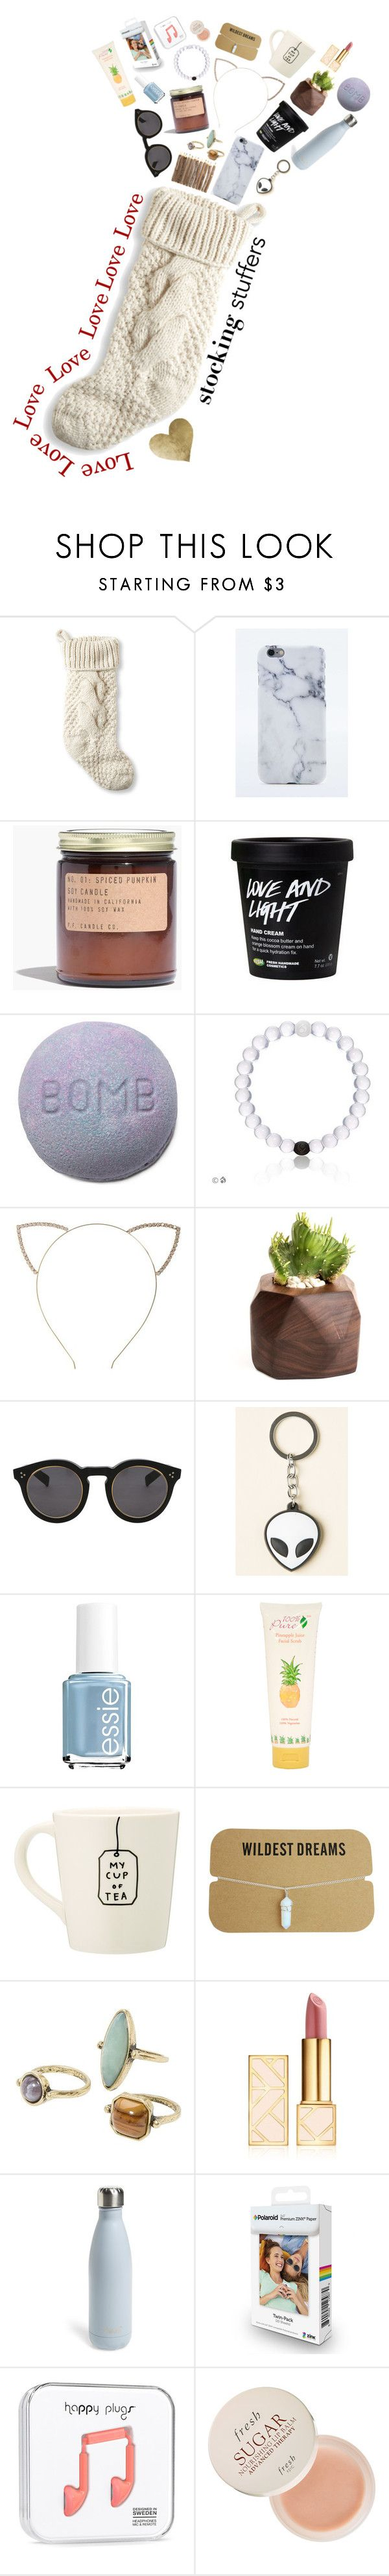 """Stocking Stuffers for Teens"" by onewithbirds ❤ liked on Polyvore featuring beauty, L.L.Bean, Madewell, Cara, Illesteva, Essie, 100% Pure, MANGO, Tory Burch and S'well"